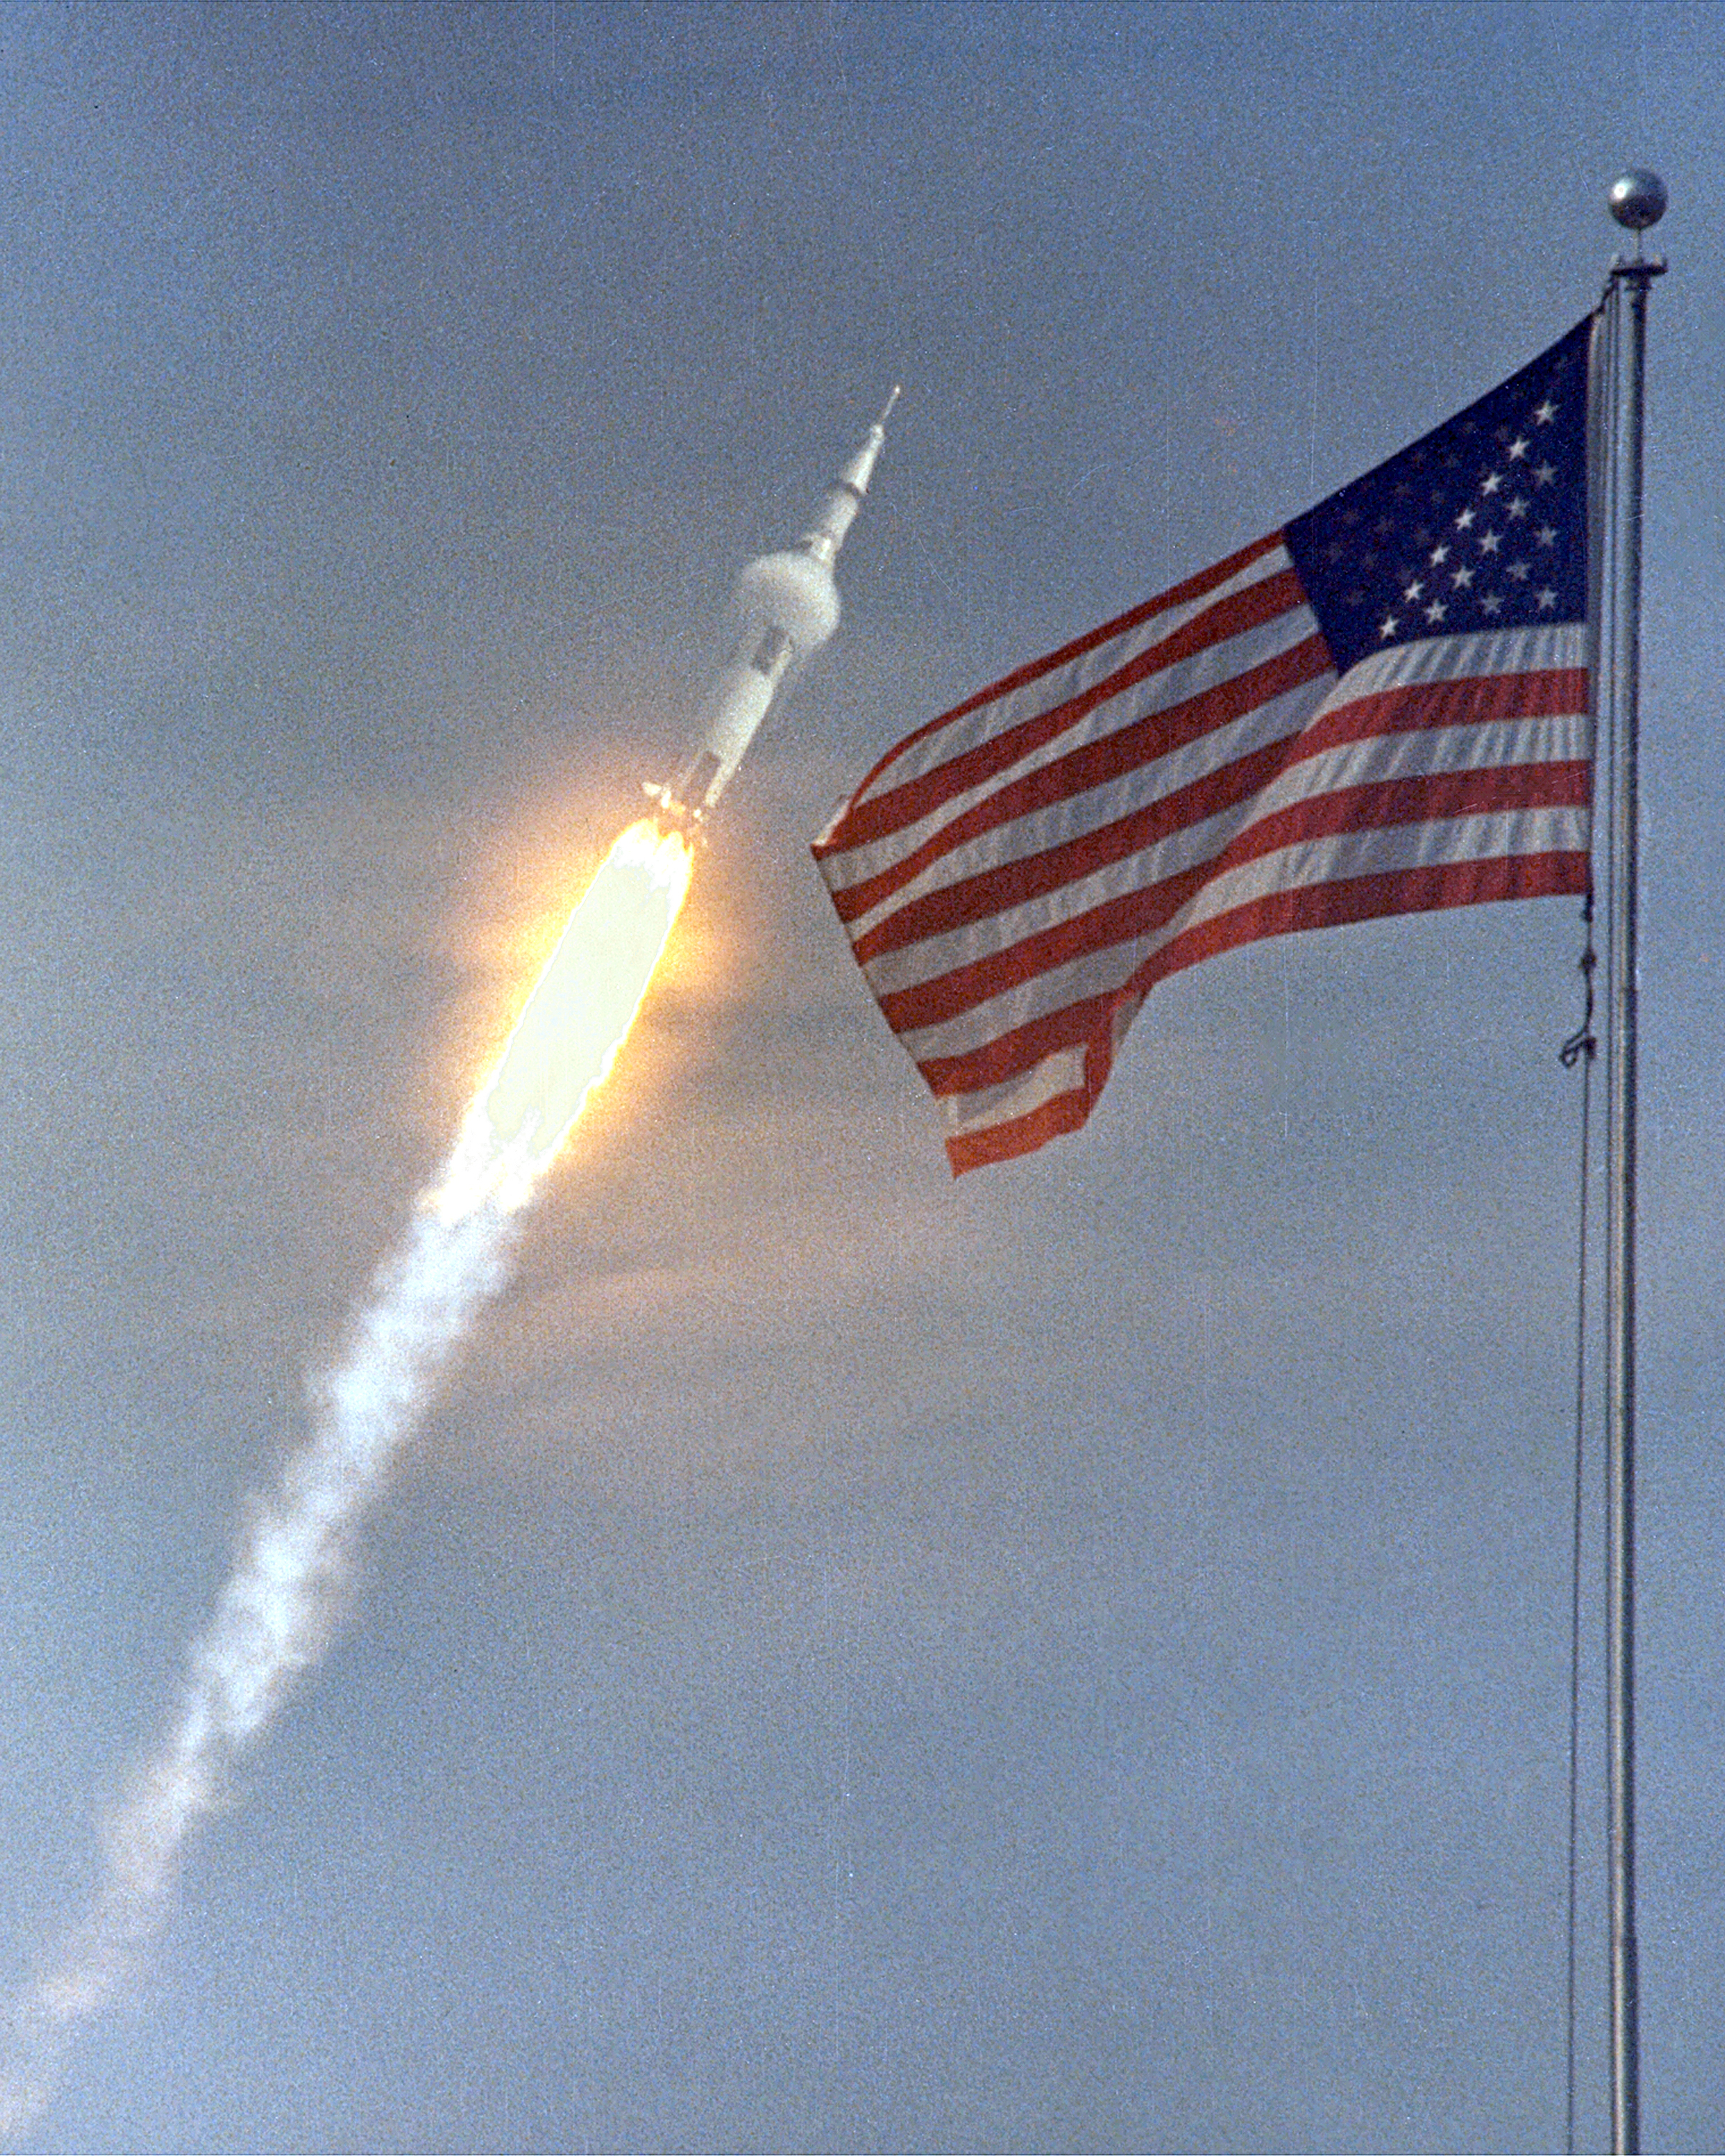 Figure \((1)\): Behold—THE BEST rocket—from back when America went places... Image Credit:  NASA